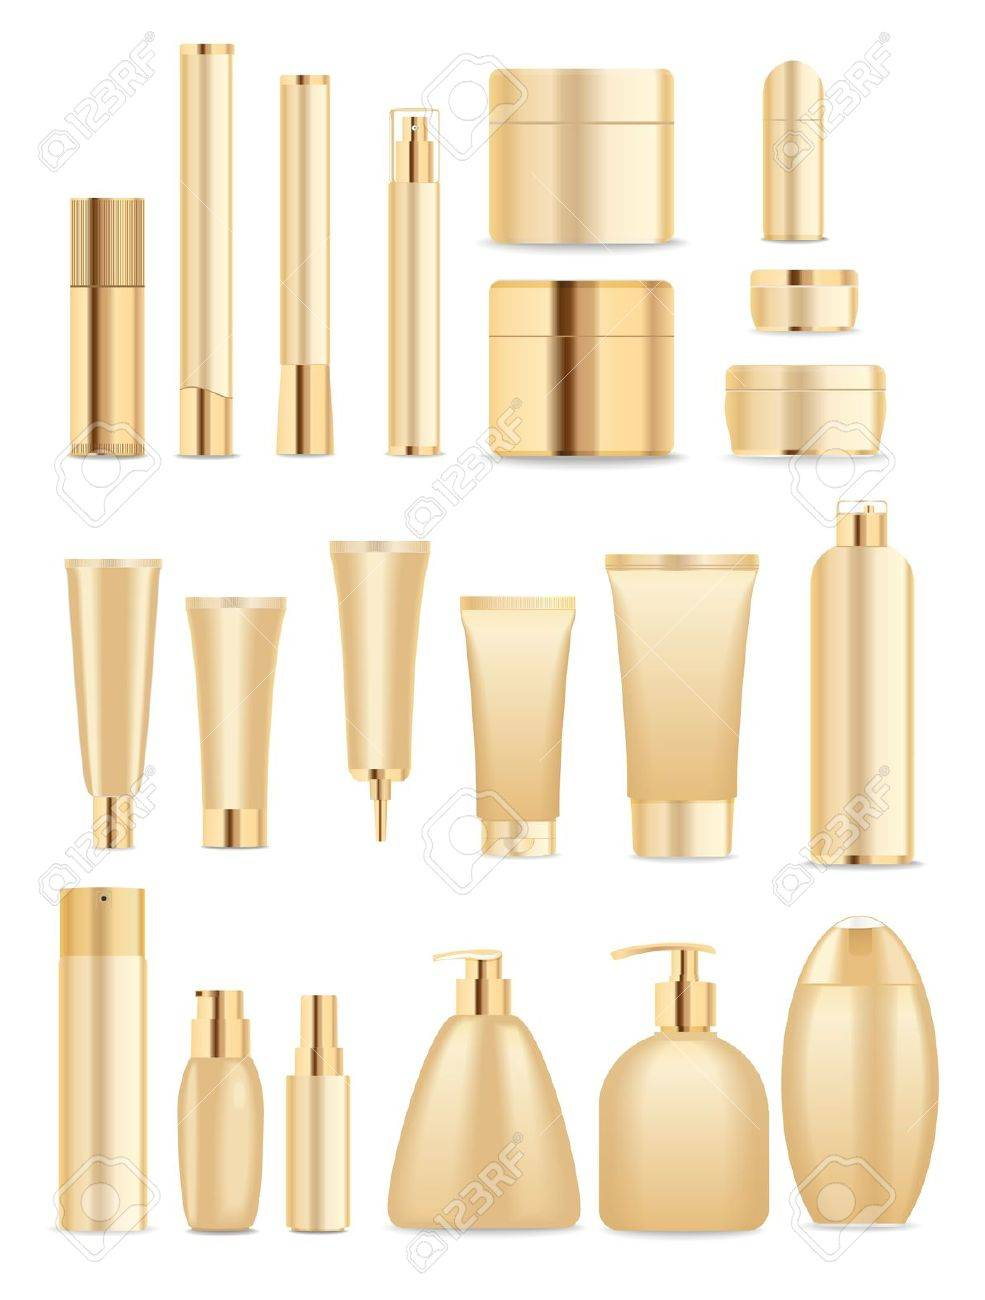 Set of cosmetic tubes isolated on white. Gold and white colors. Place for your textVector - 42934152